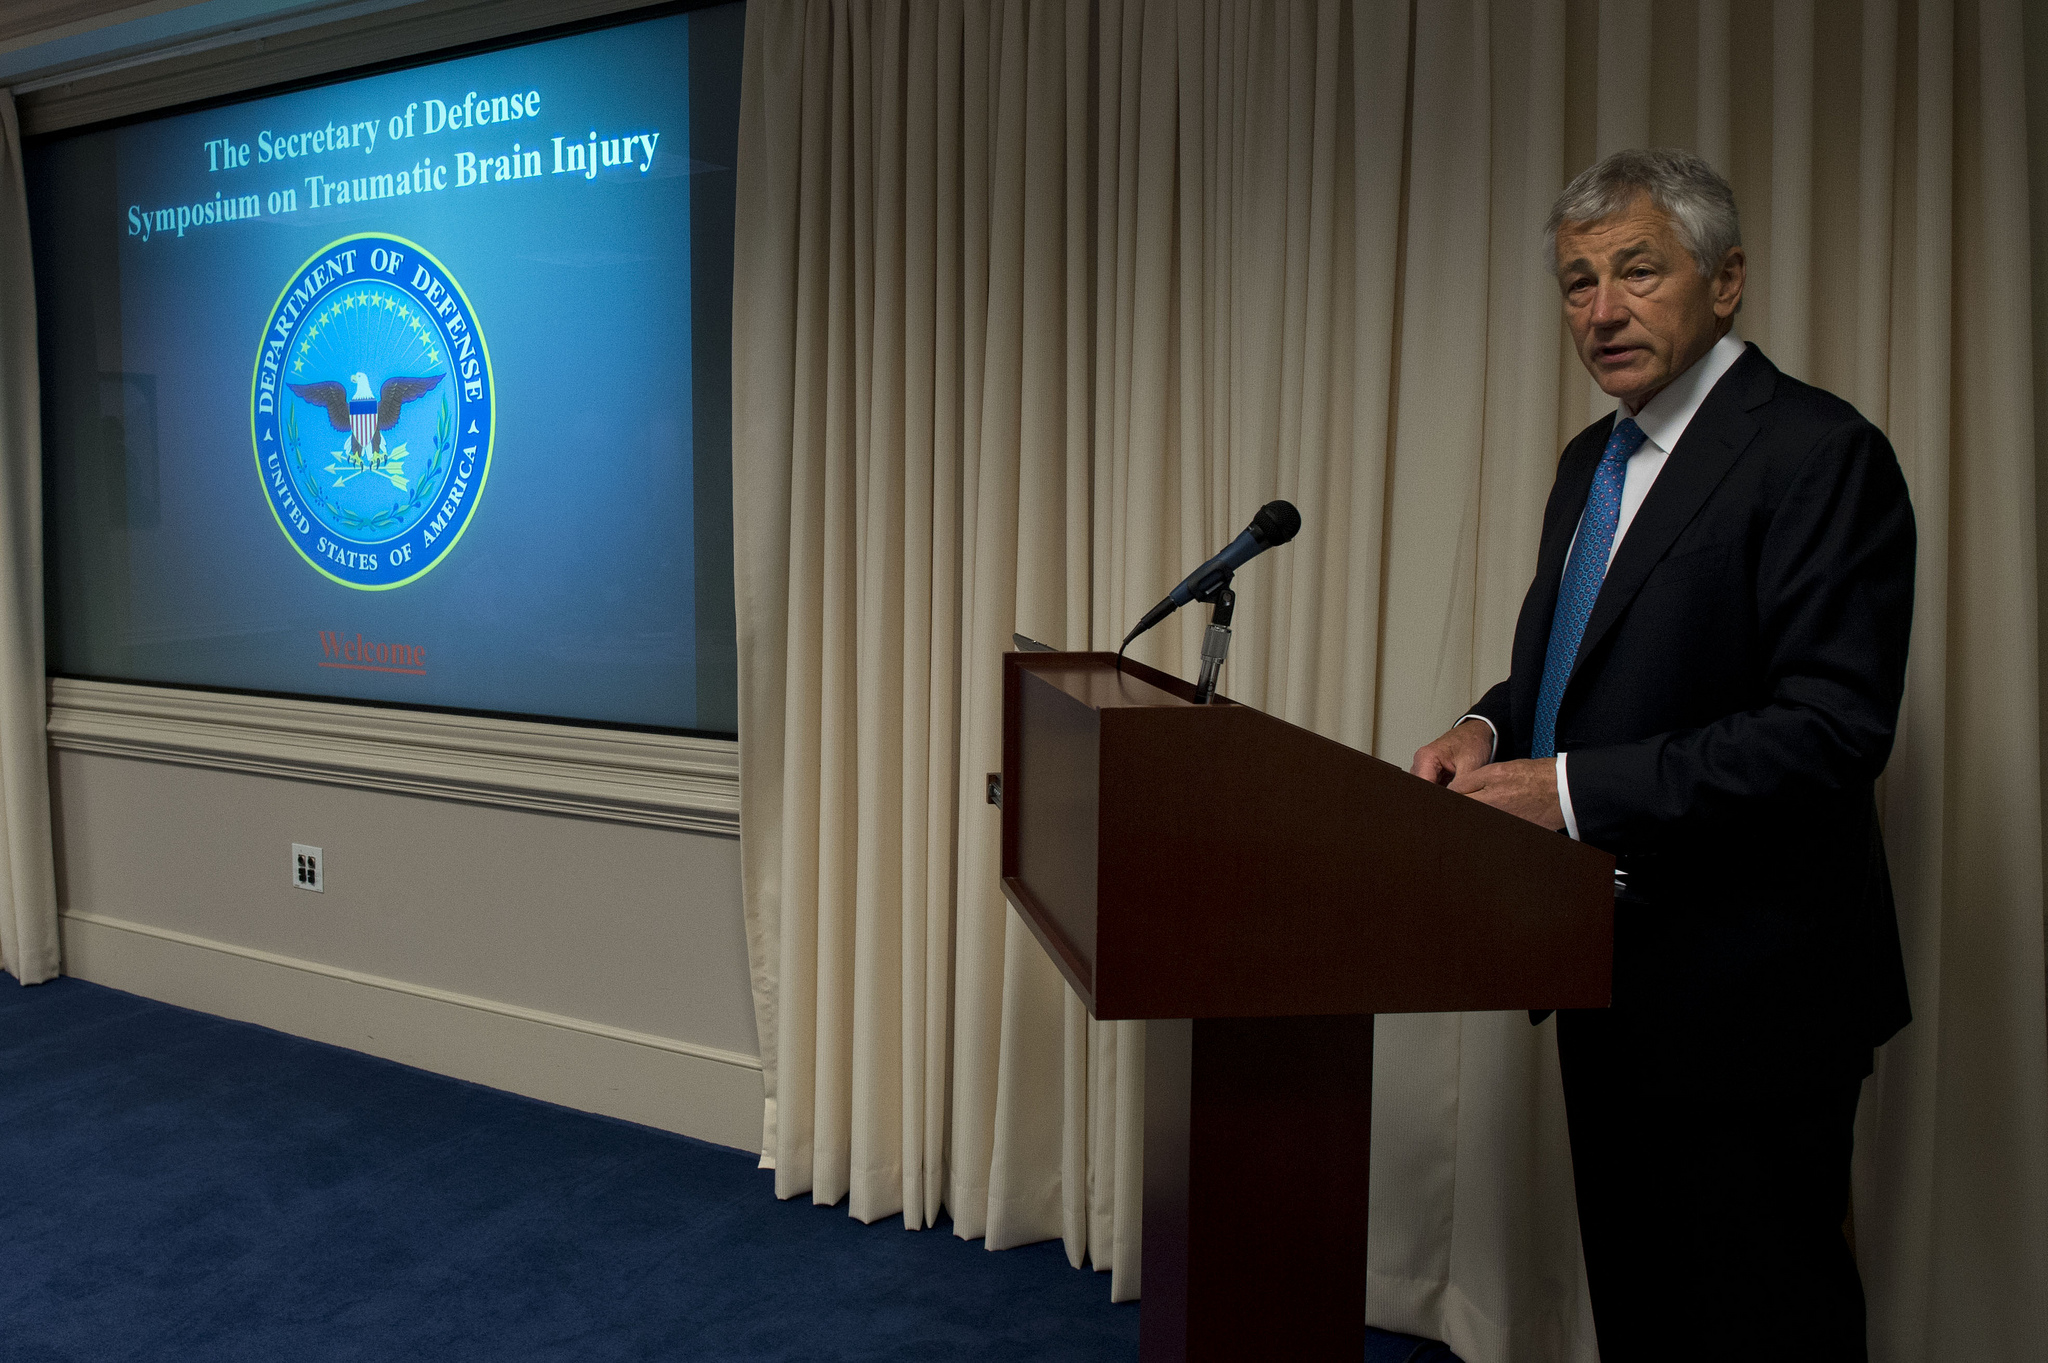 Secretary of Defense Chuck Hagel addresses experts within the brain injury community on Traumatic Brain Injury